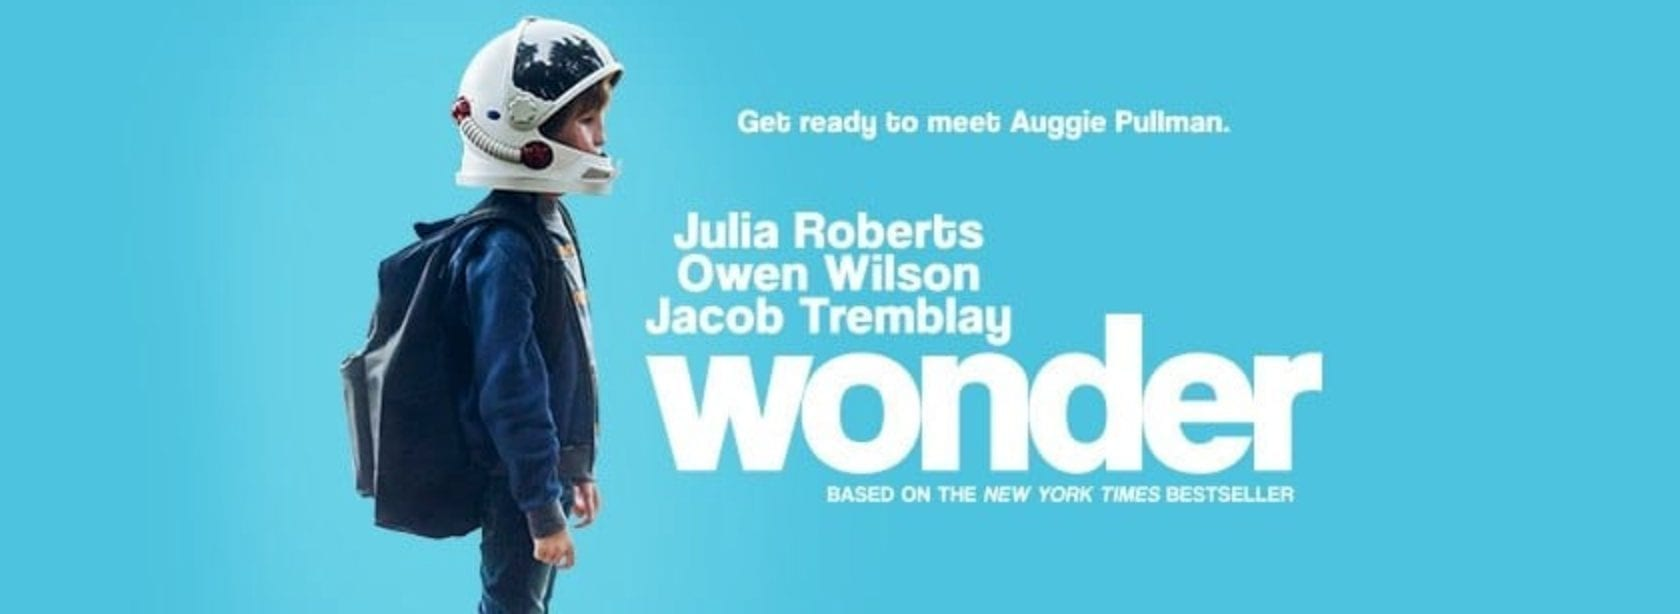 """3 Things About the Movie """"Wonder"""" + Suggestions for Talking About it All With Your Kids"""